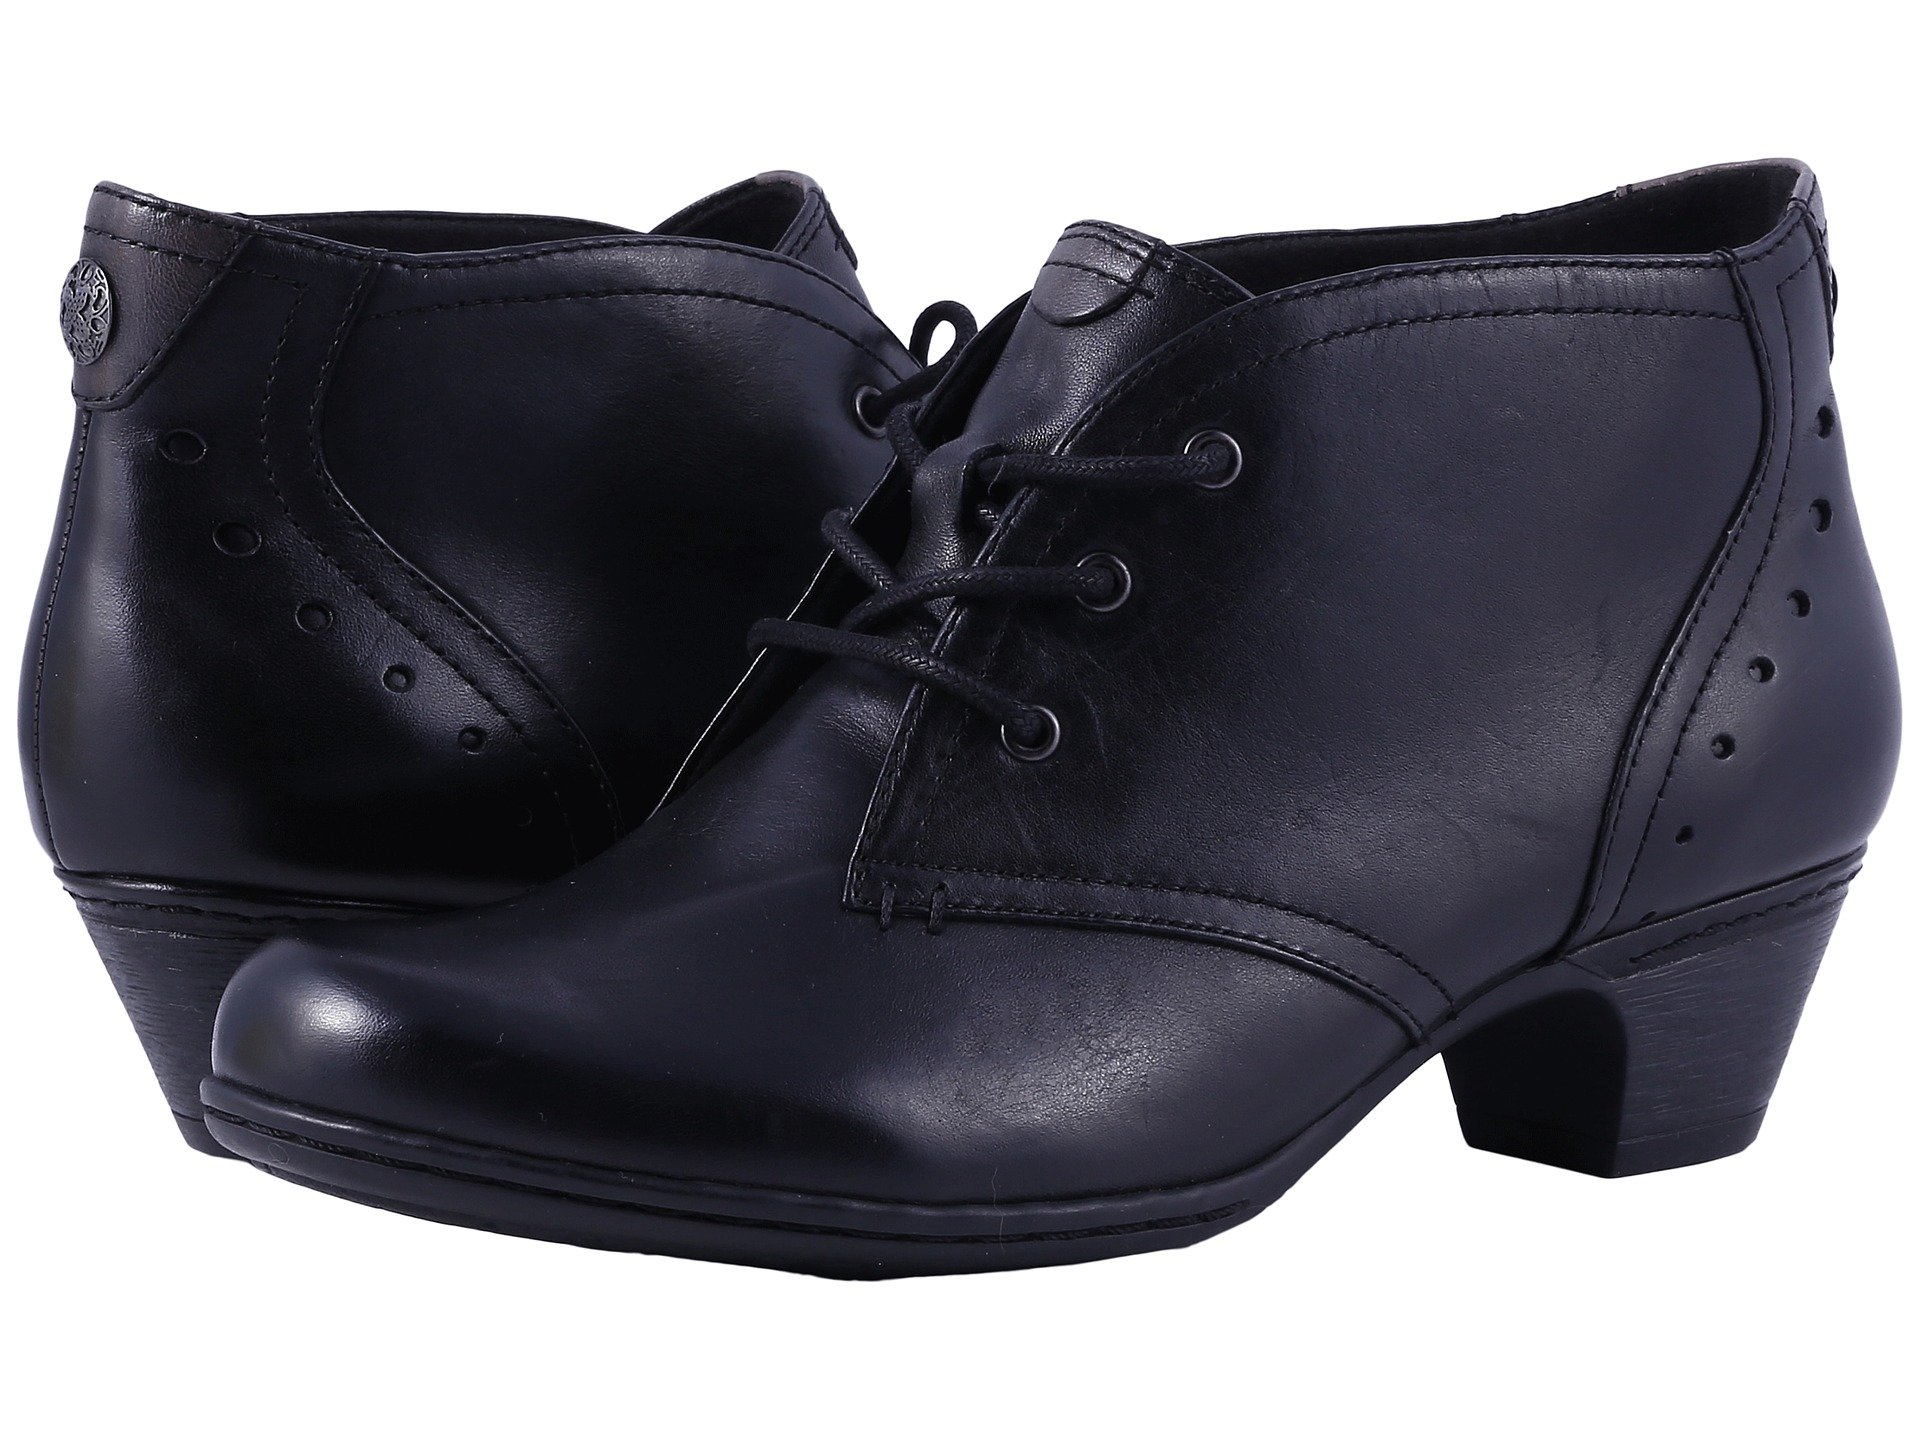 Aria Cobb Rockport Collection Hill Black Leather qTdxdYw0